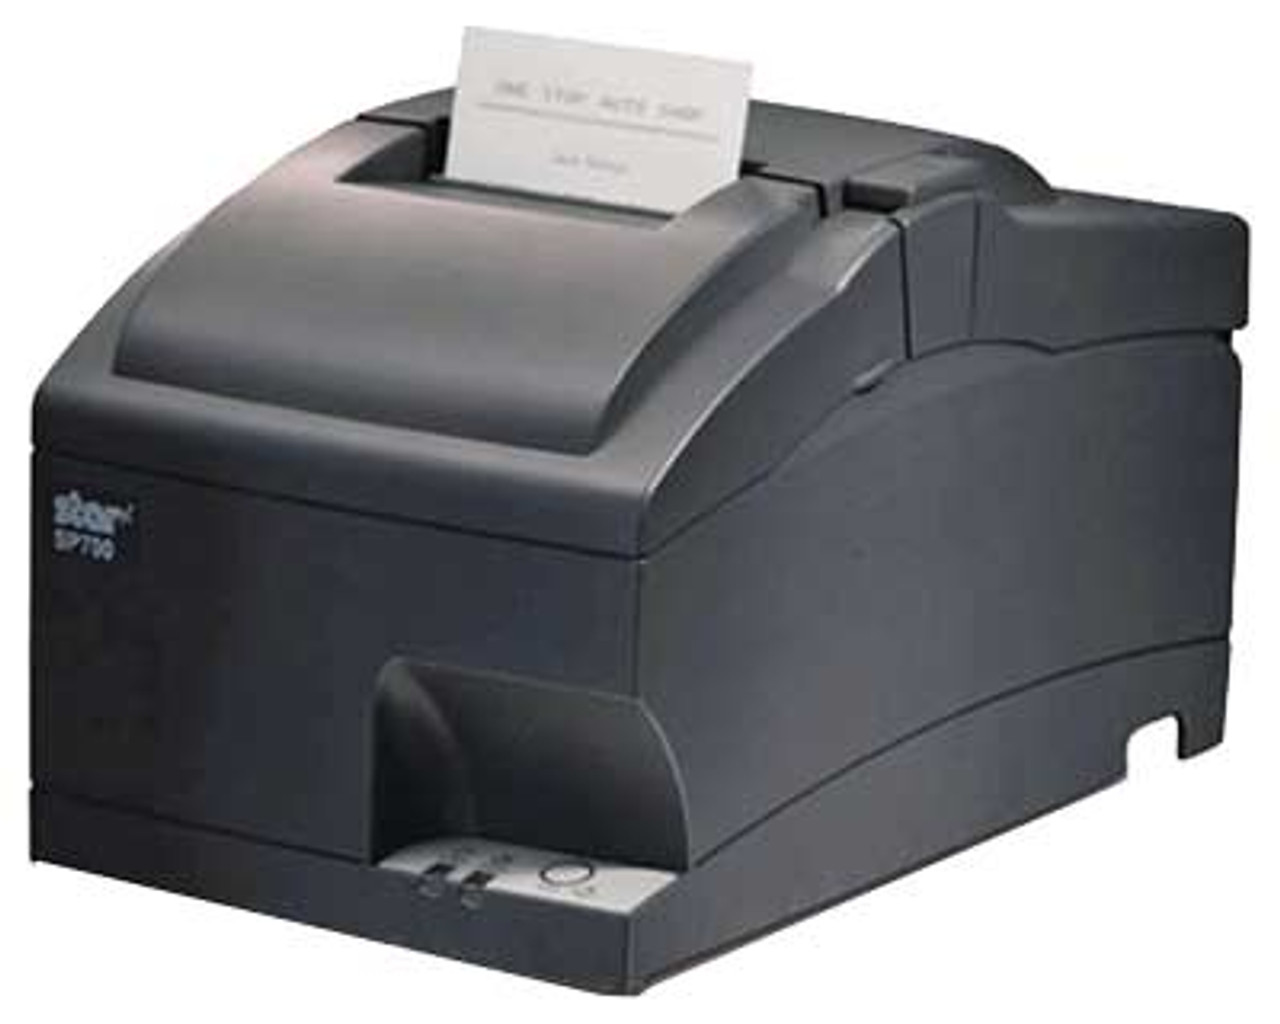 Star SP700 POS Impact Printer, SP712MD-R-GRY